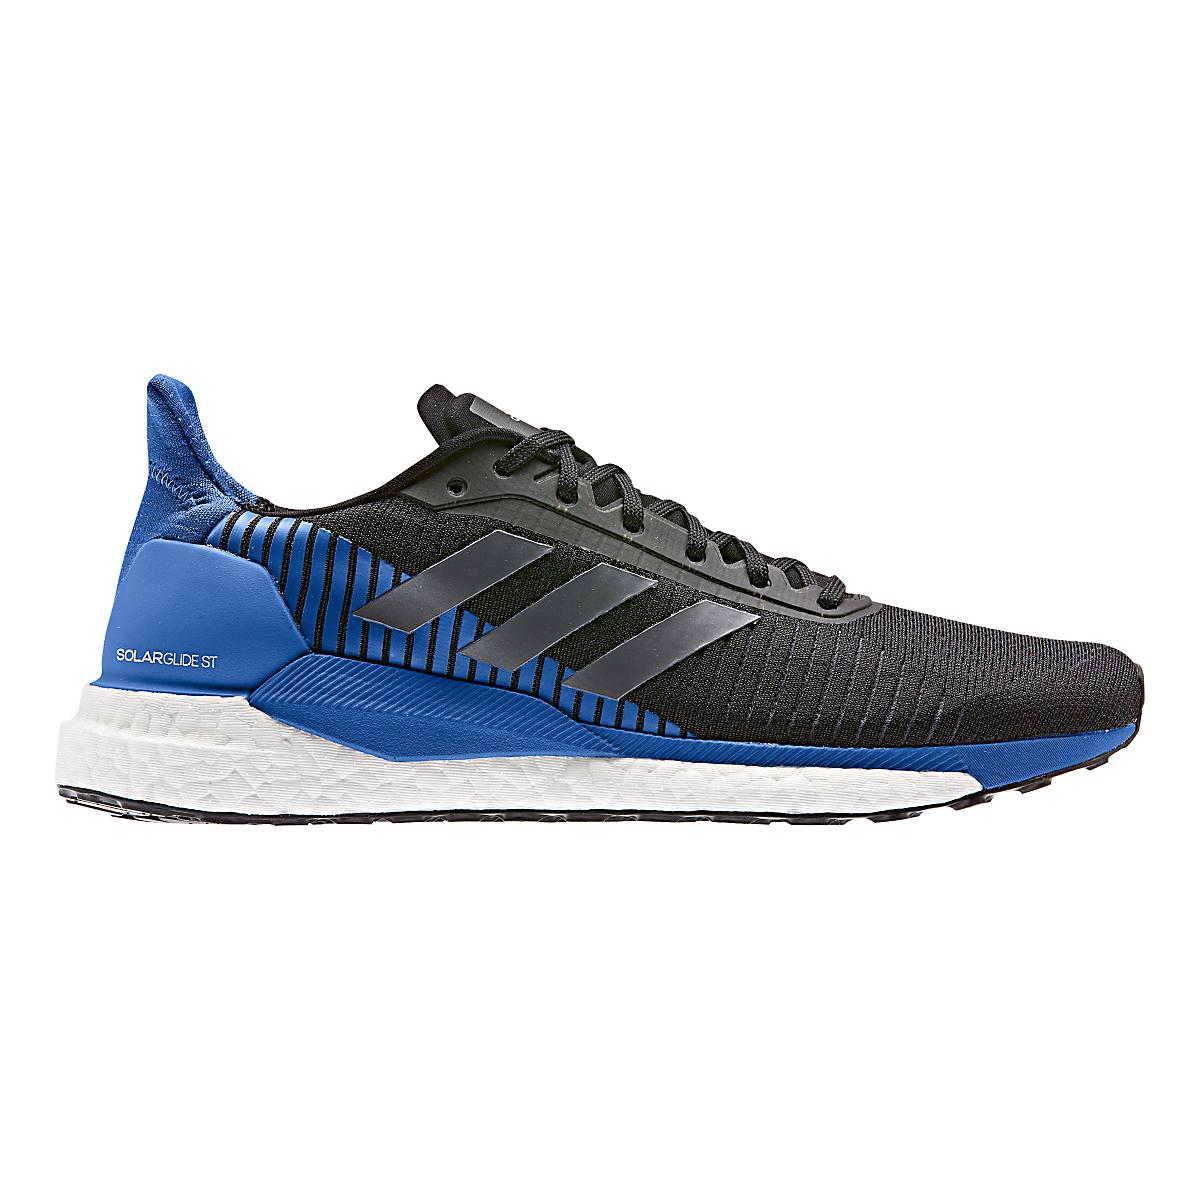 competitive price 0b7ea 97960 Mens adidas Solar Glide ST 19 Running Shoe at Road Runner Sports